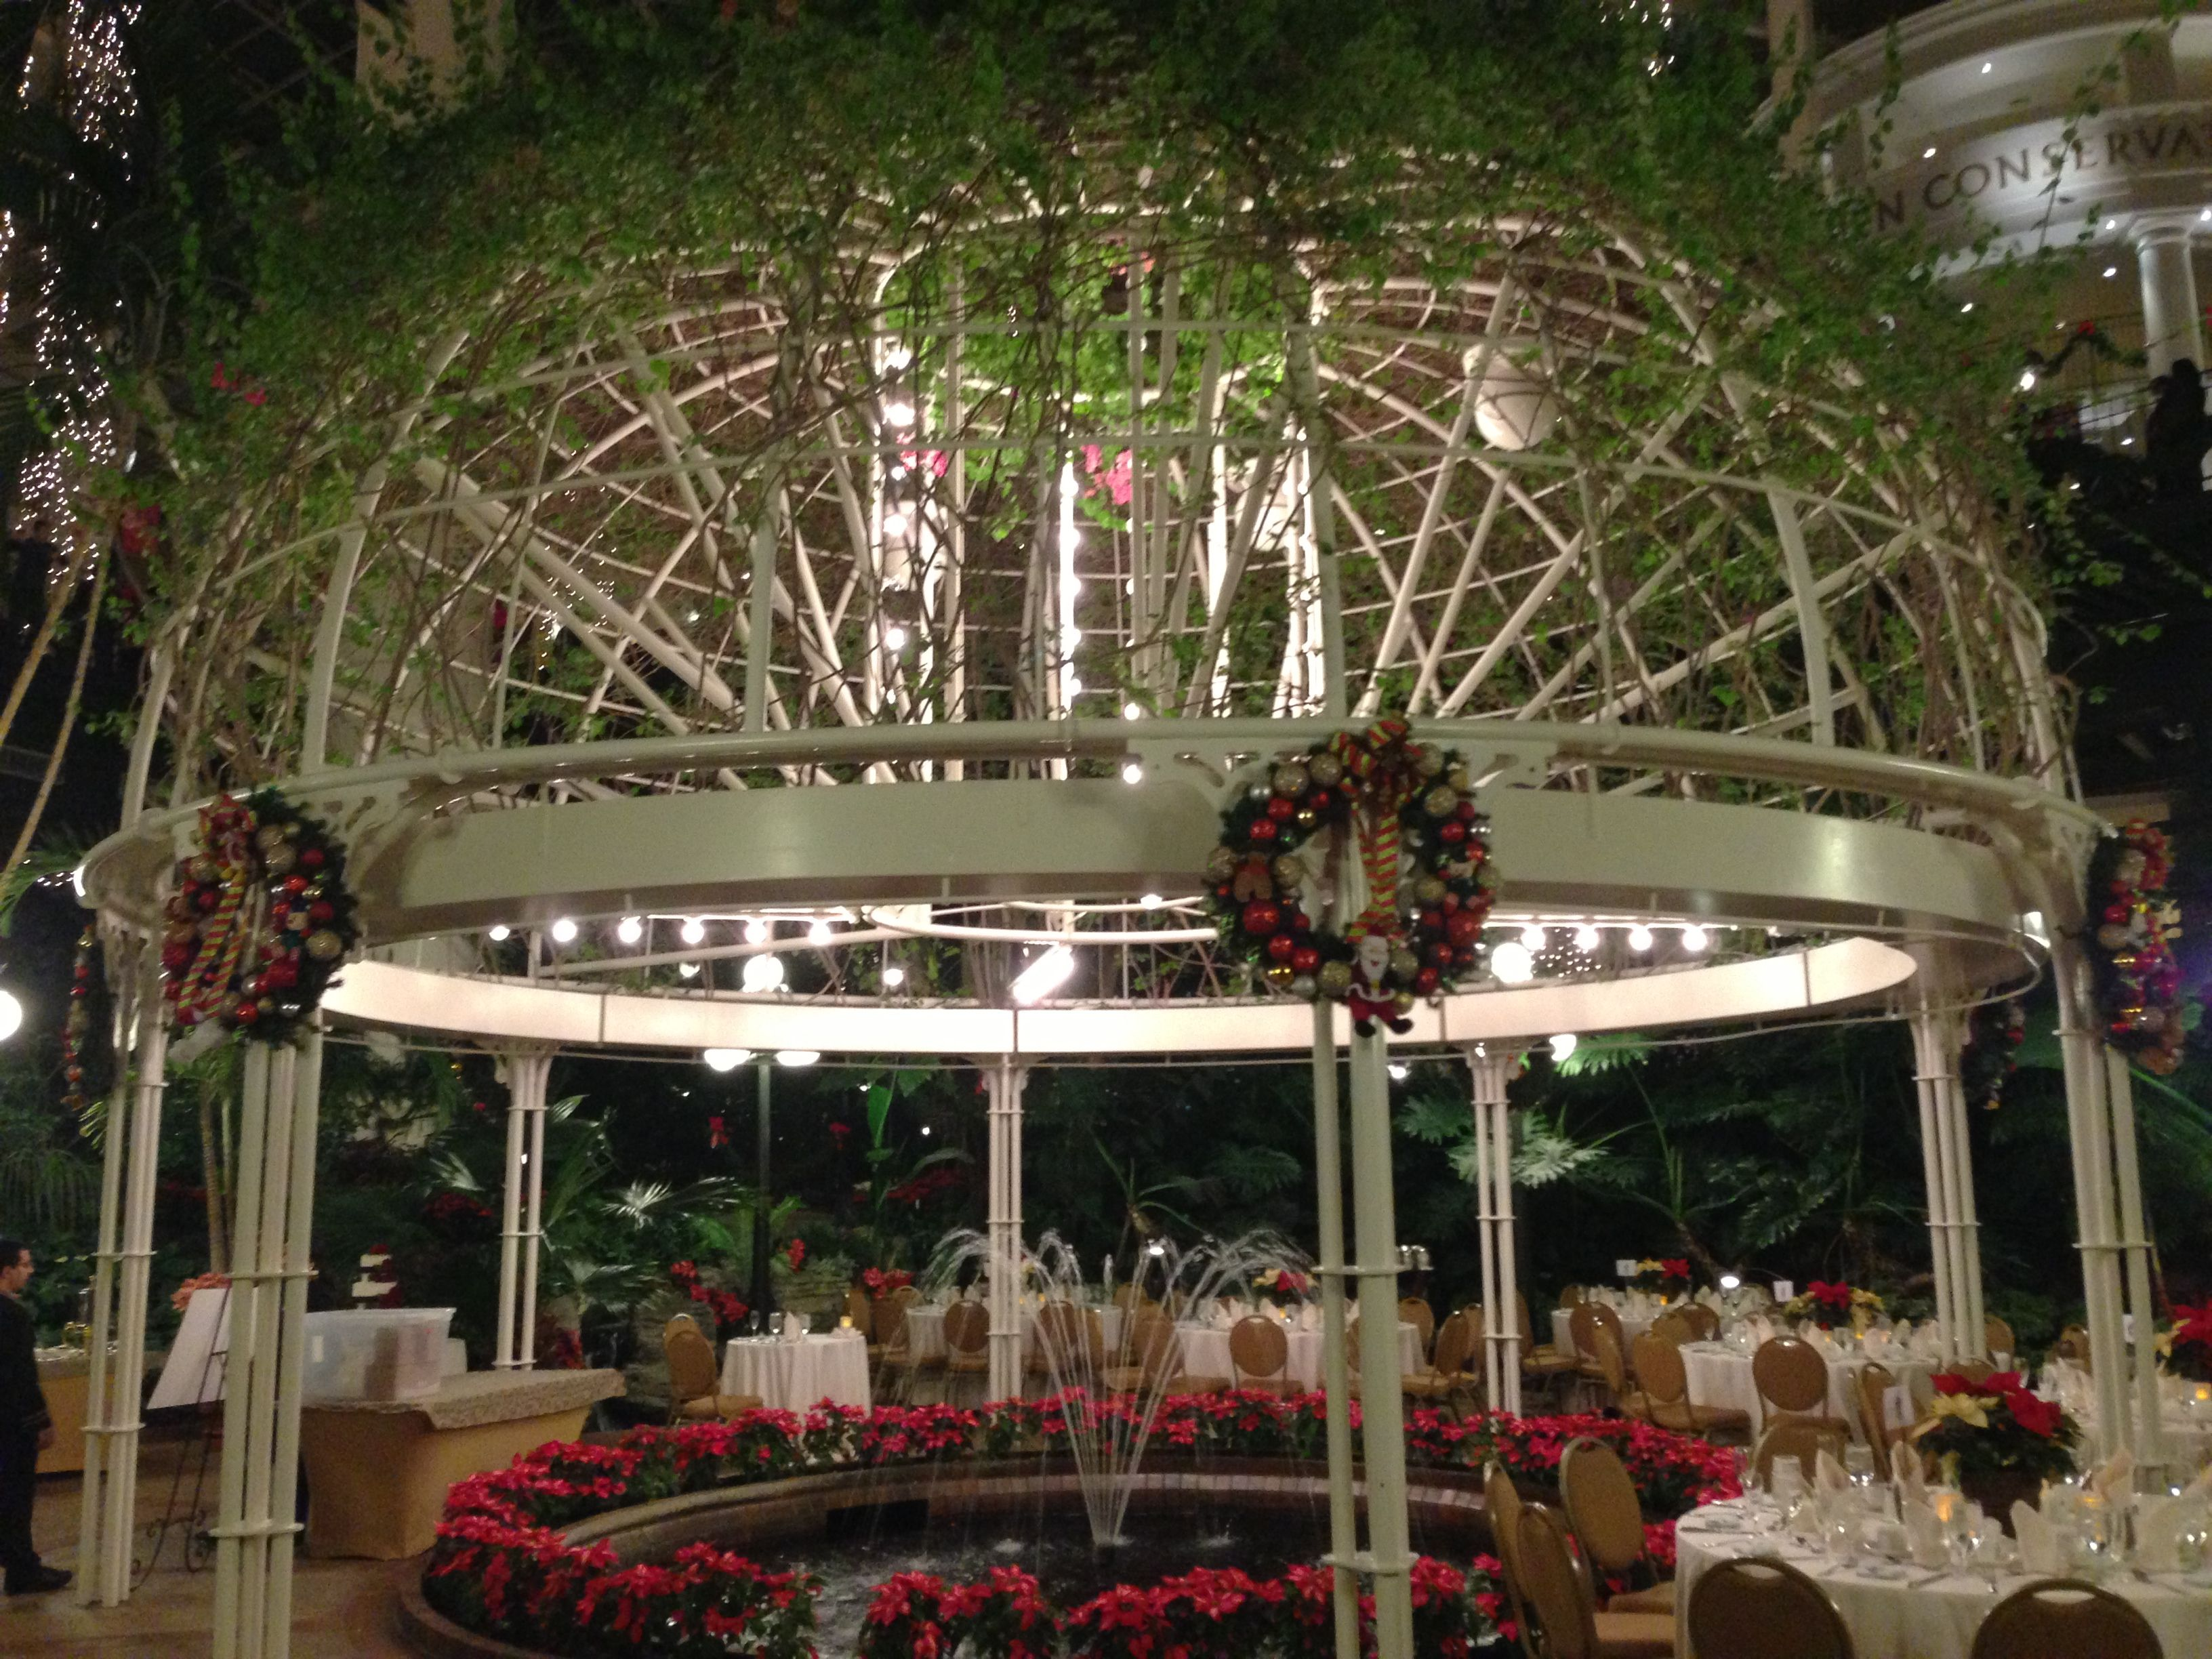 Crystal Gazebo Opryland Hotel